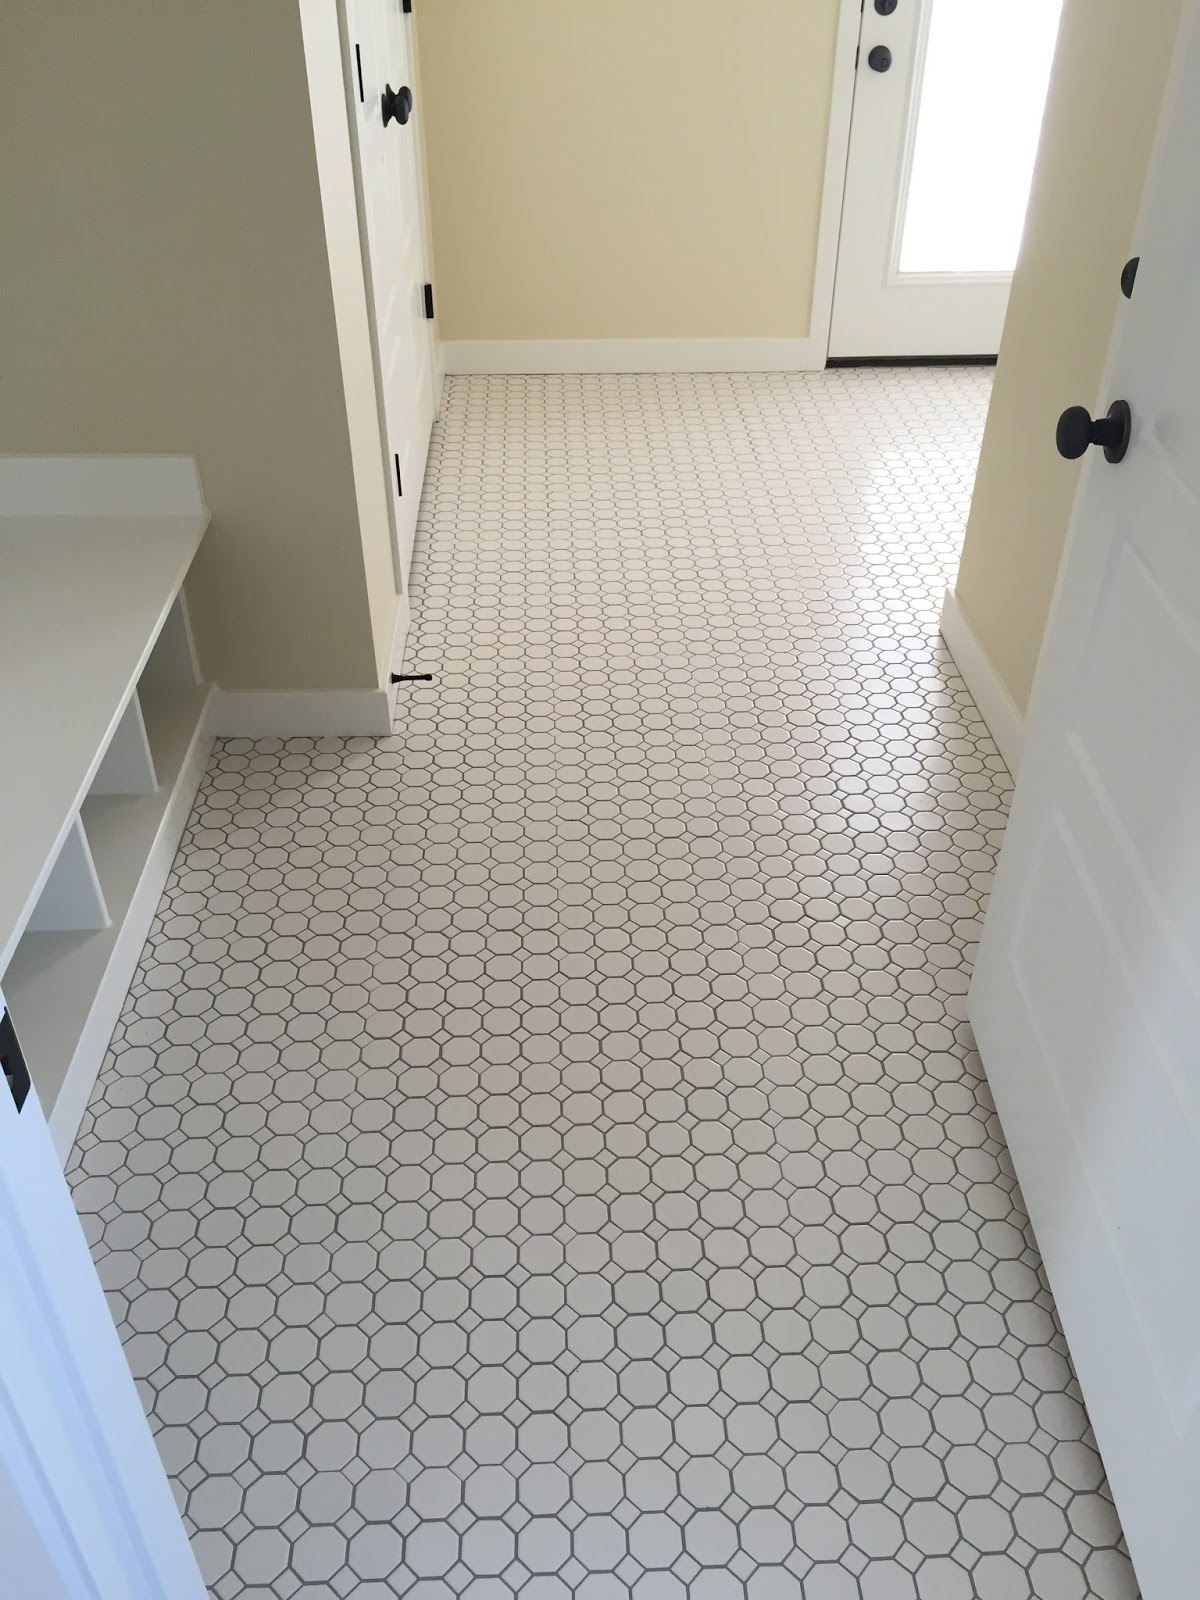 Top design must haves when building a home floor tile luxe octagon mosaic luxe white oct 2 with white dot dailygadgetfo Gallery